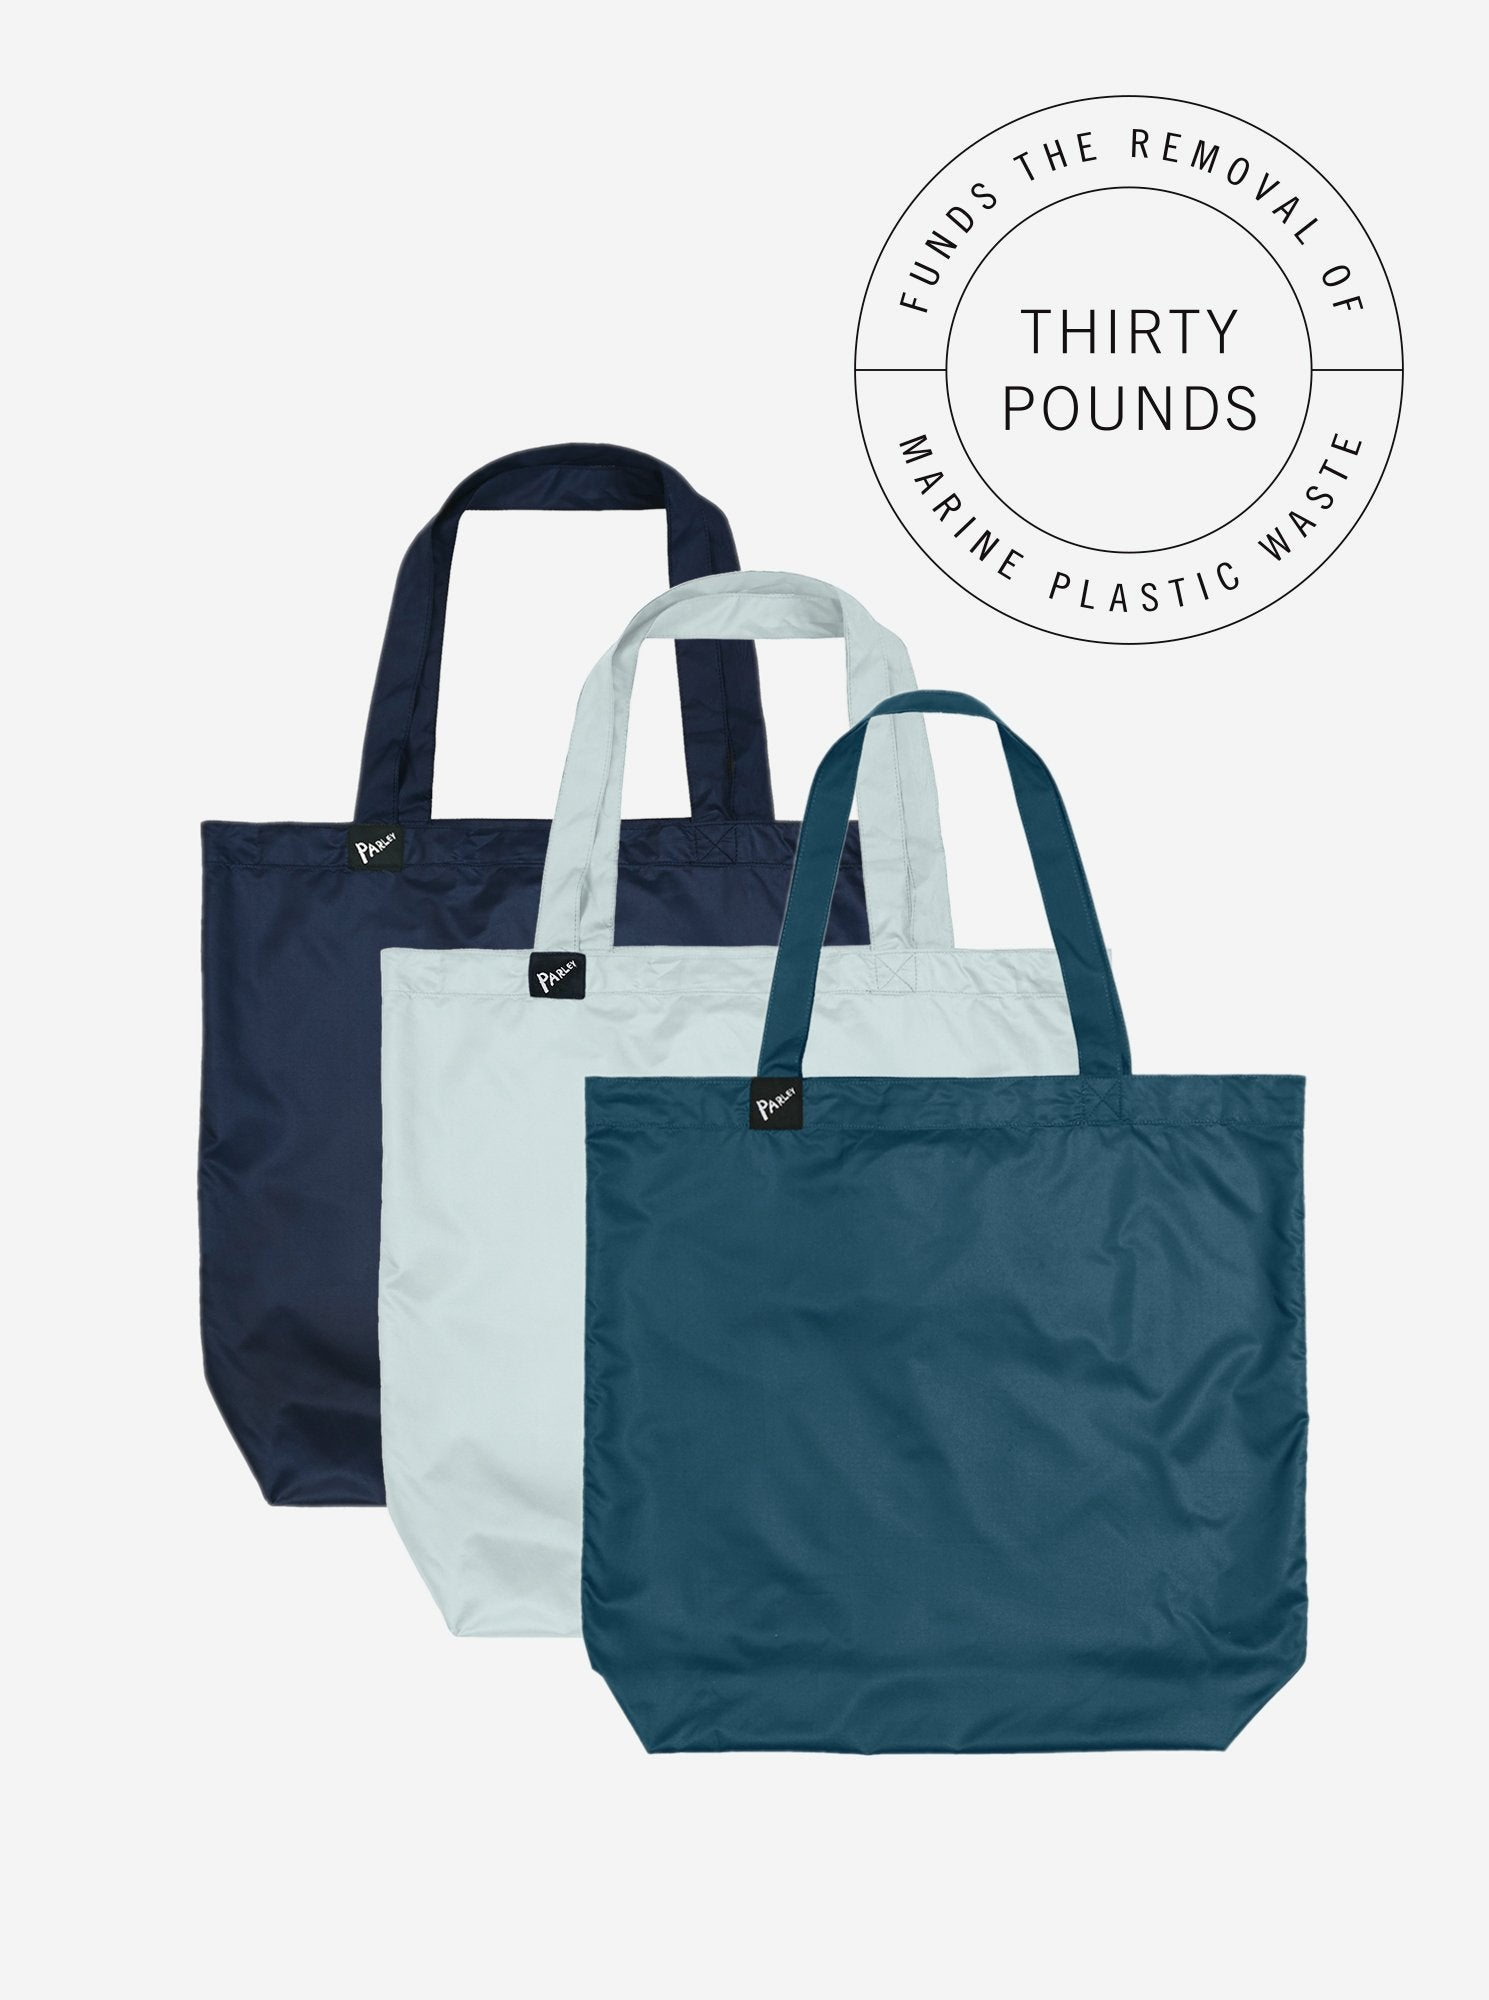 Ocean Bag Bundle #2